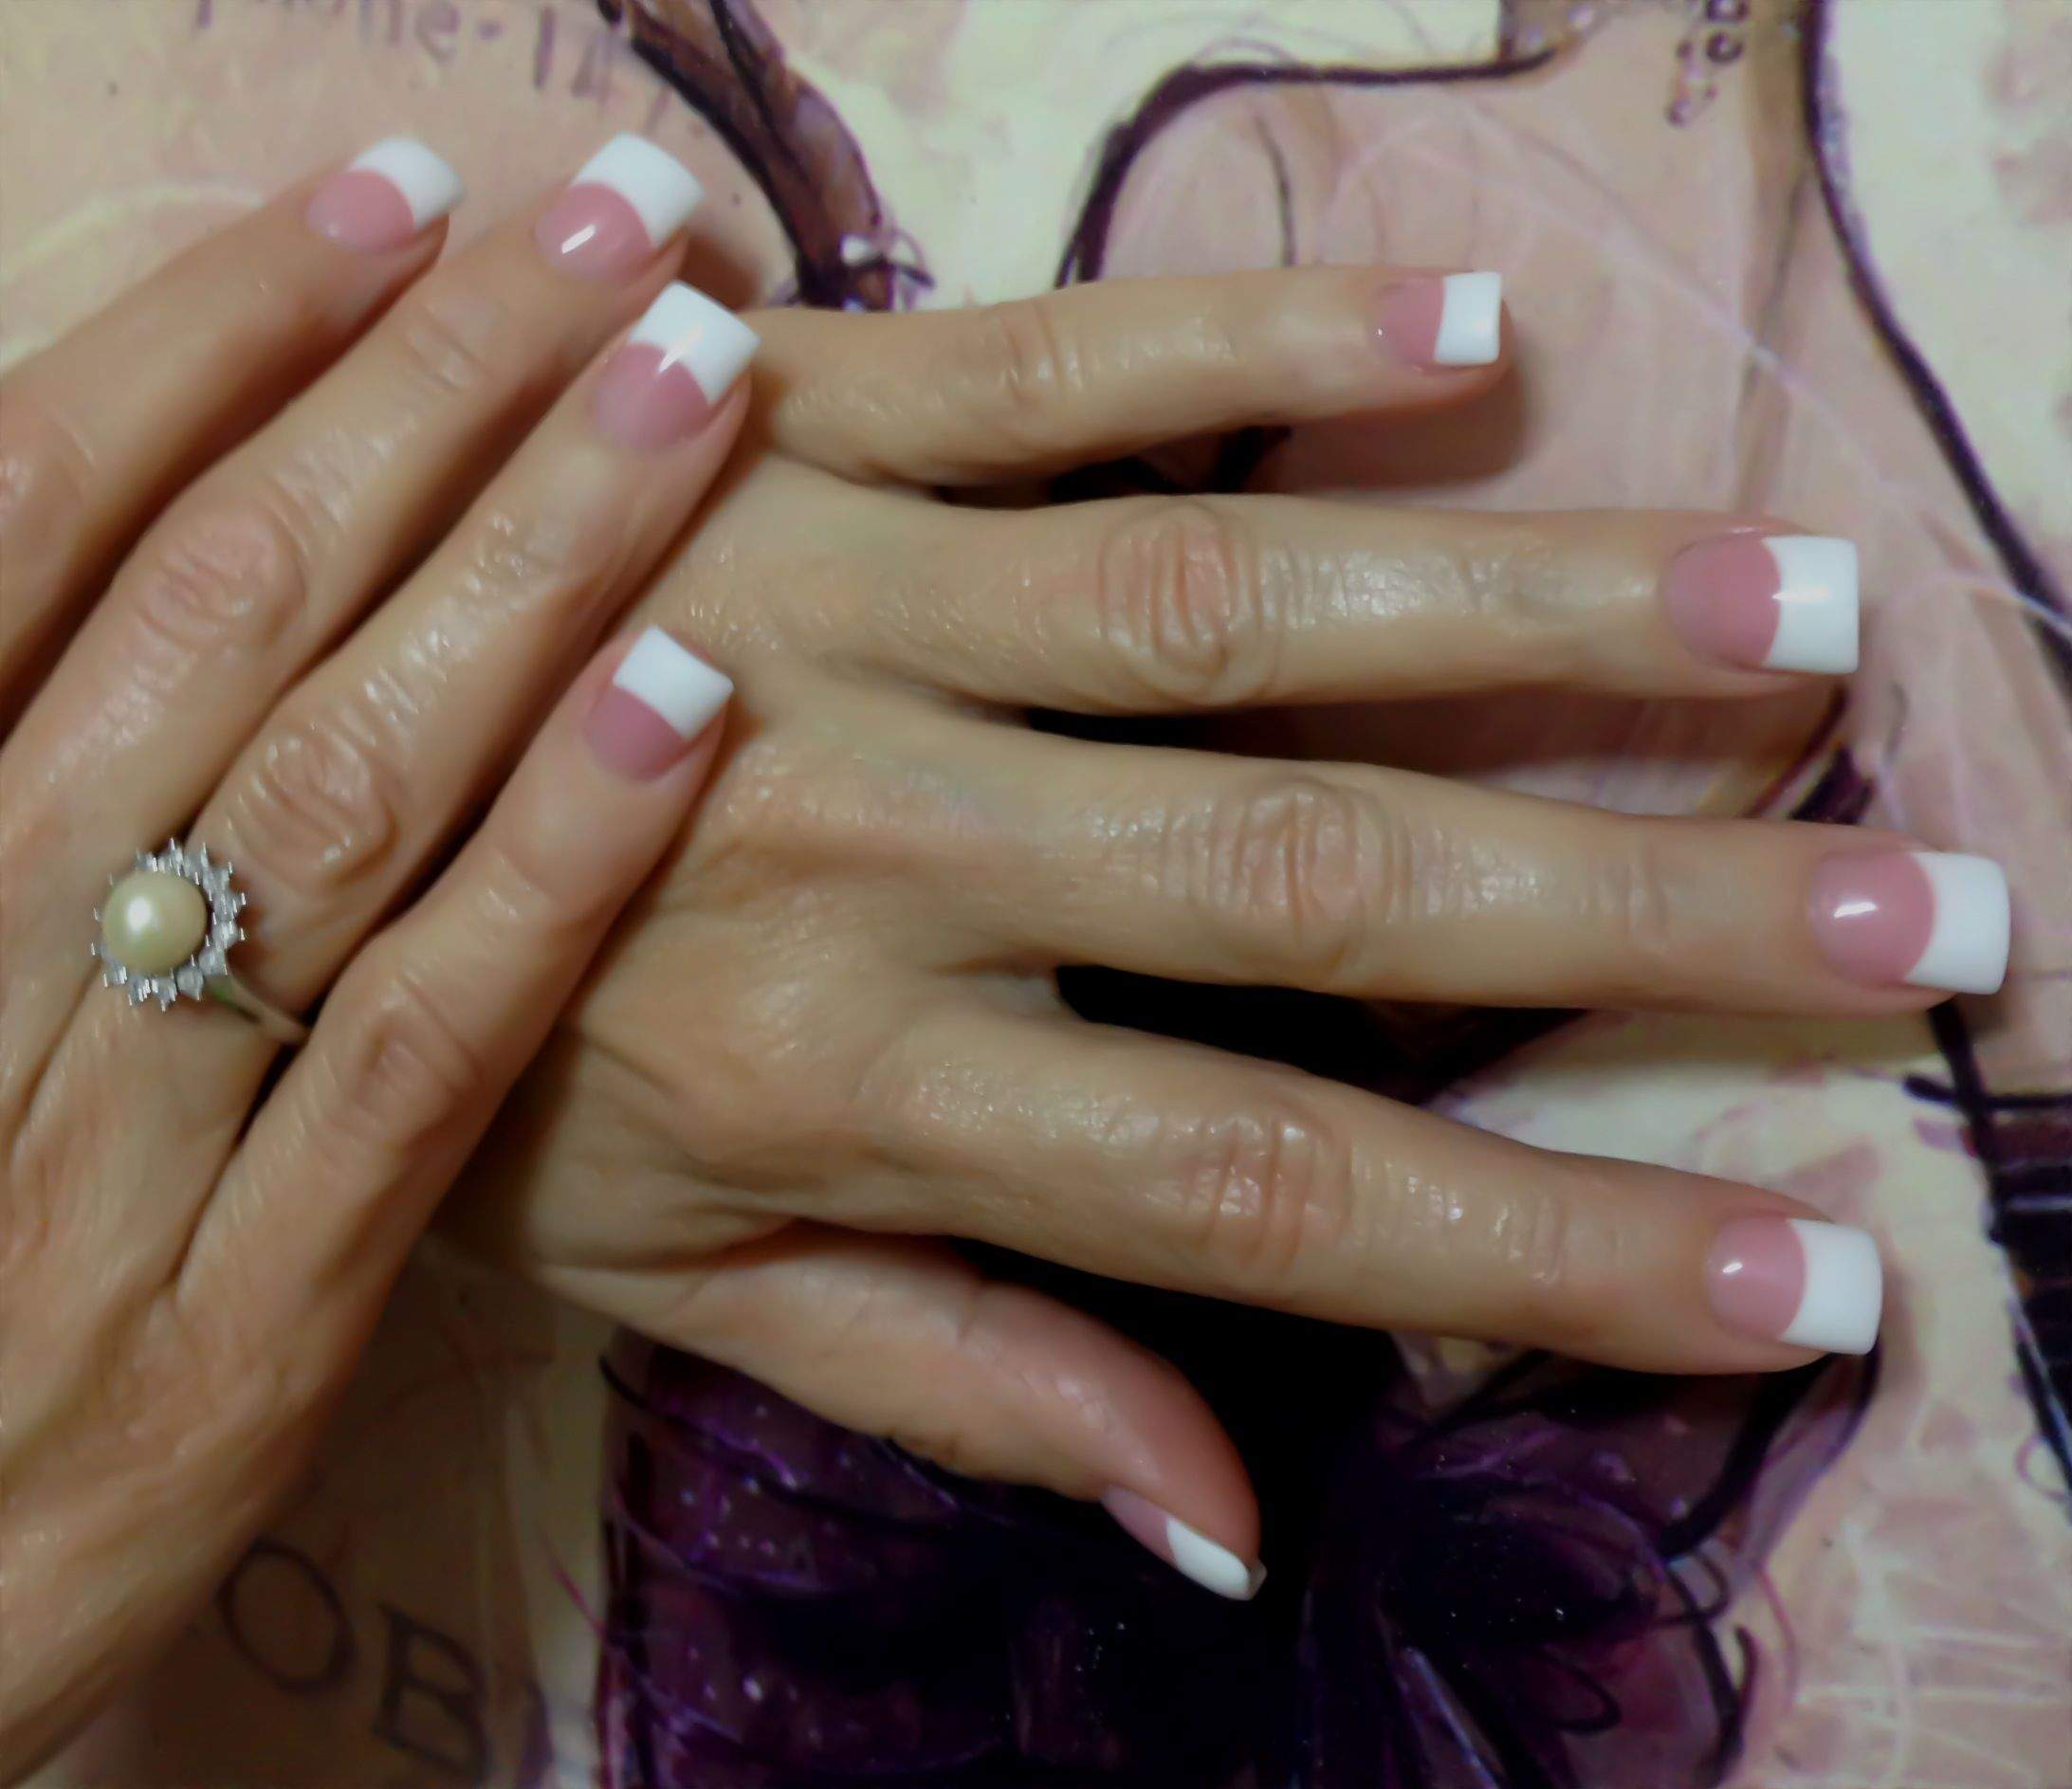 tammy taylor pink & white acrylic nails doneyours truly